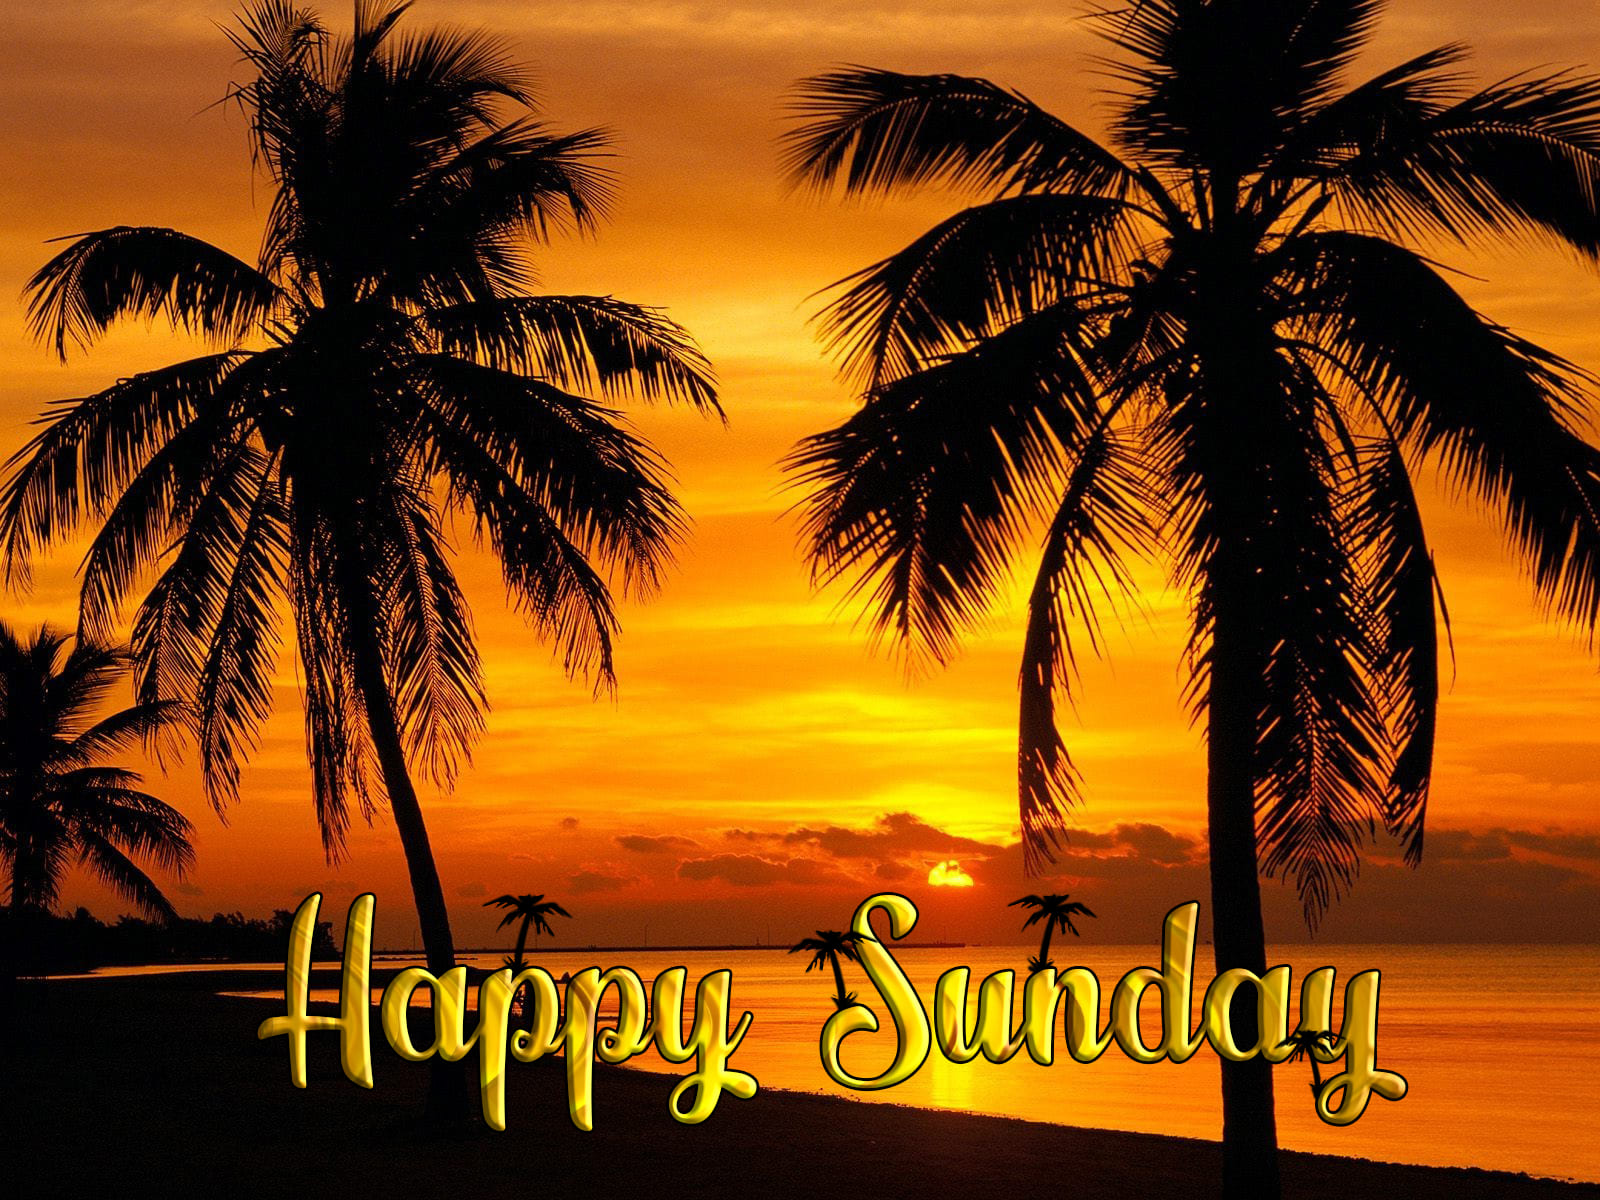 Pictures of Wishes for a Happy Sunday. 20 Beautiful Cards